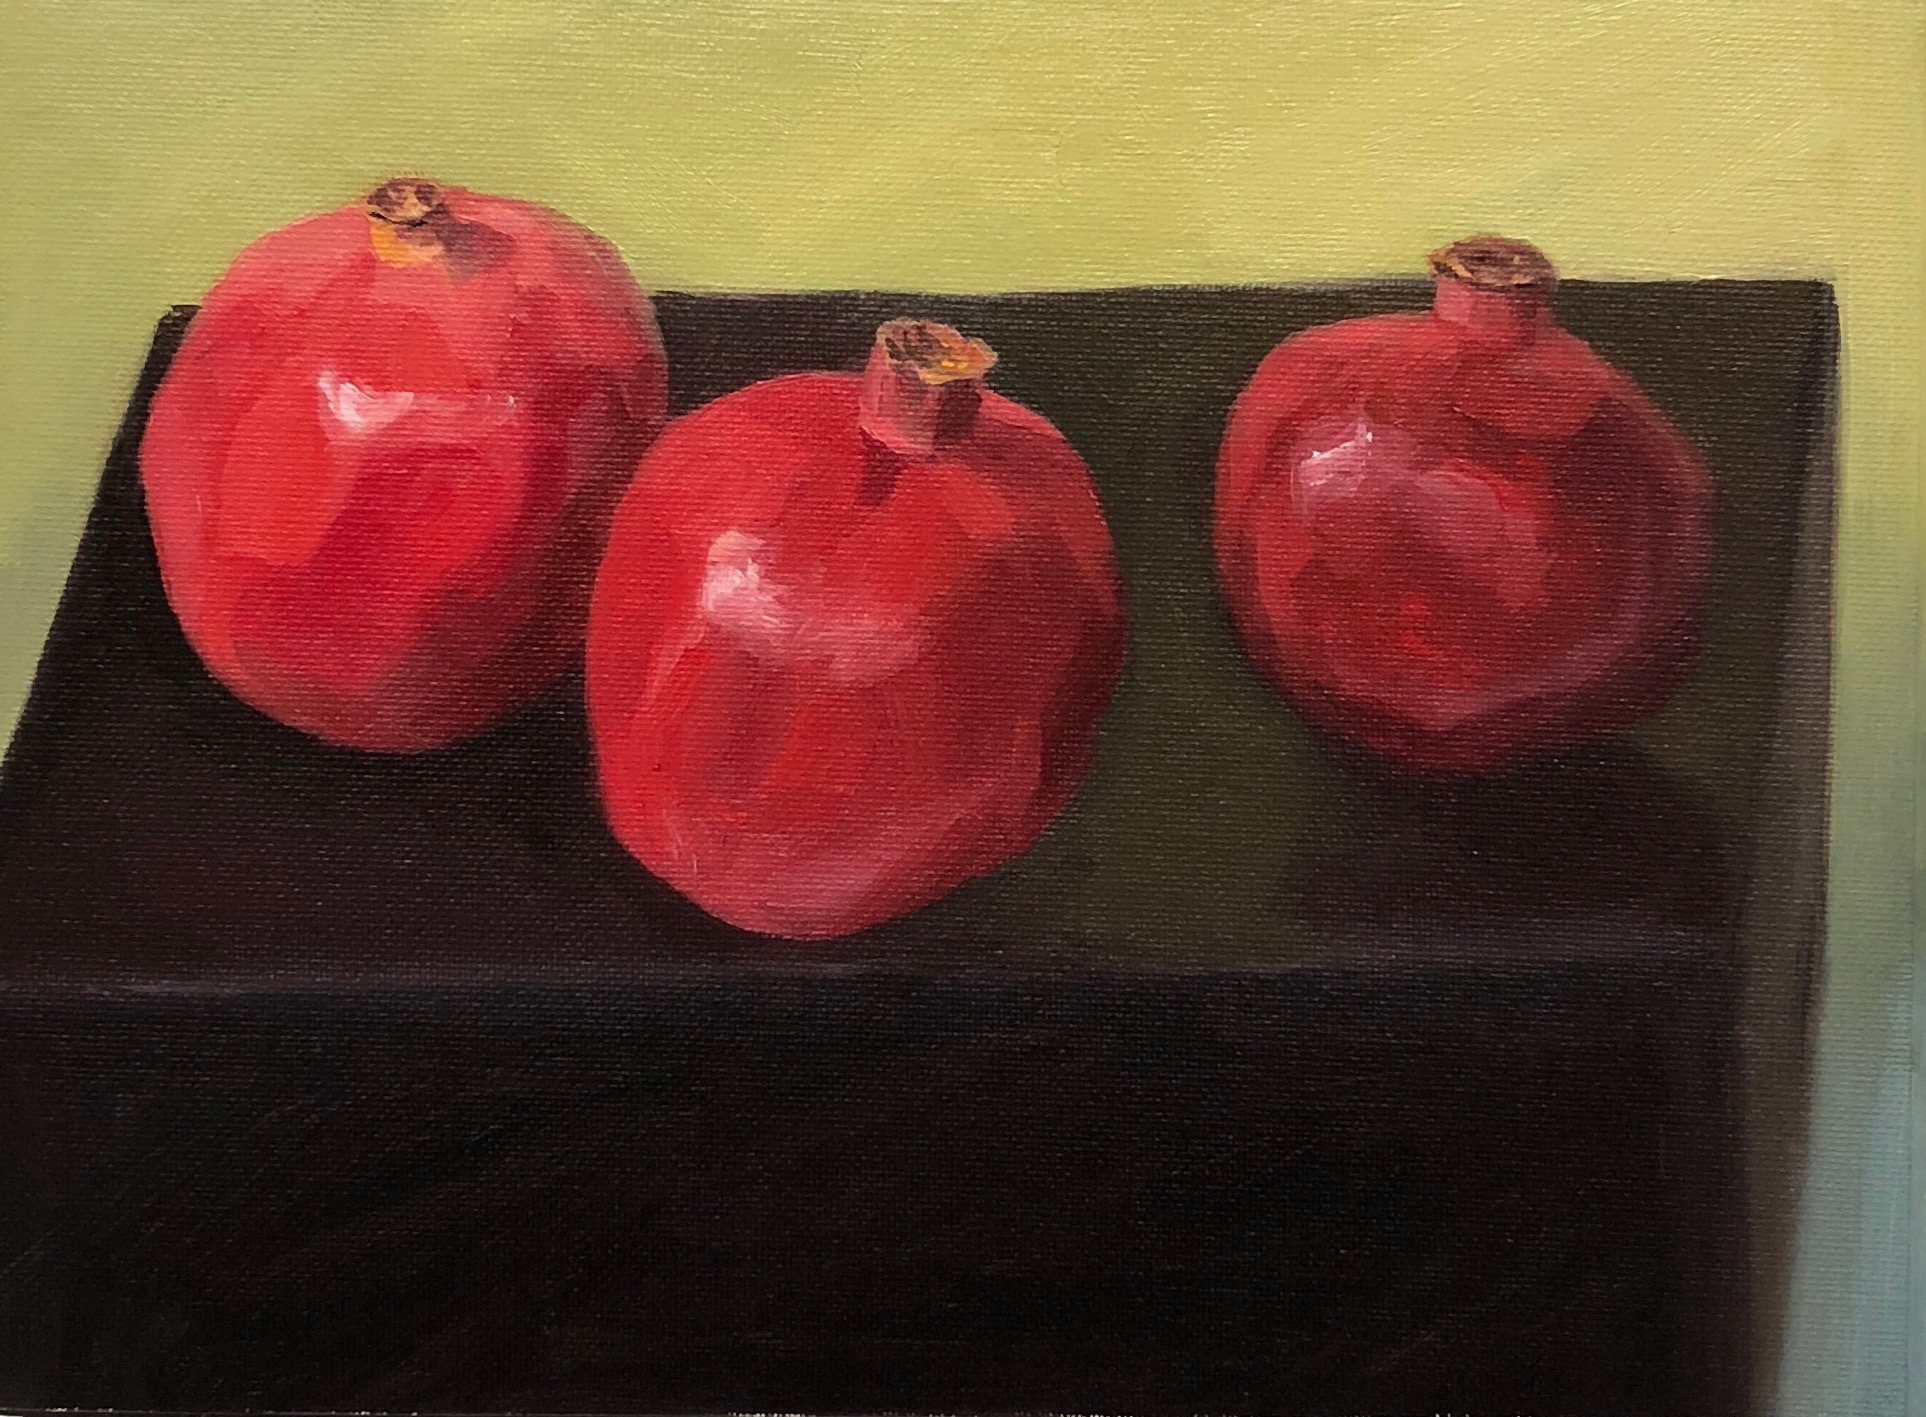 4 Poms on a Black Plate, oil on panel, 8x10""